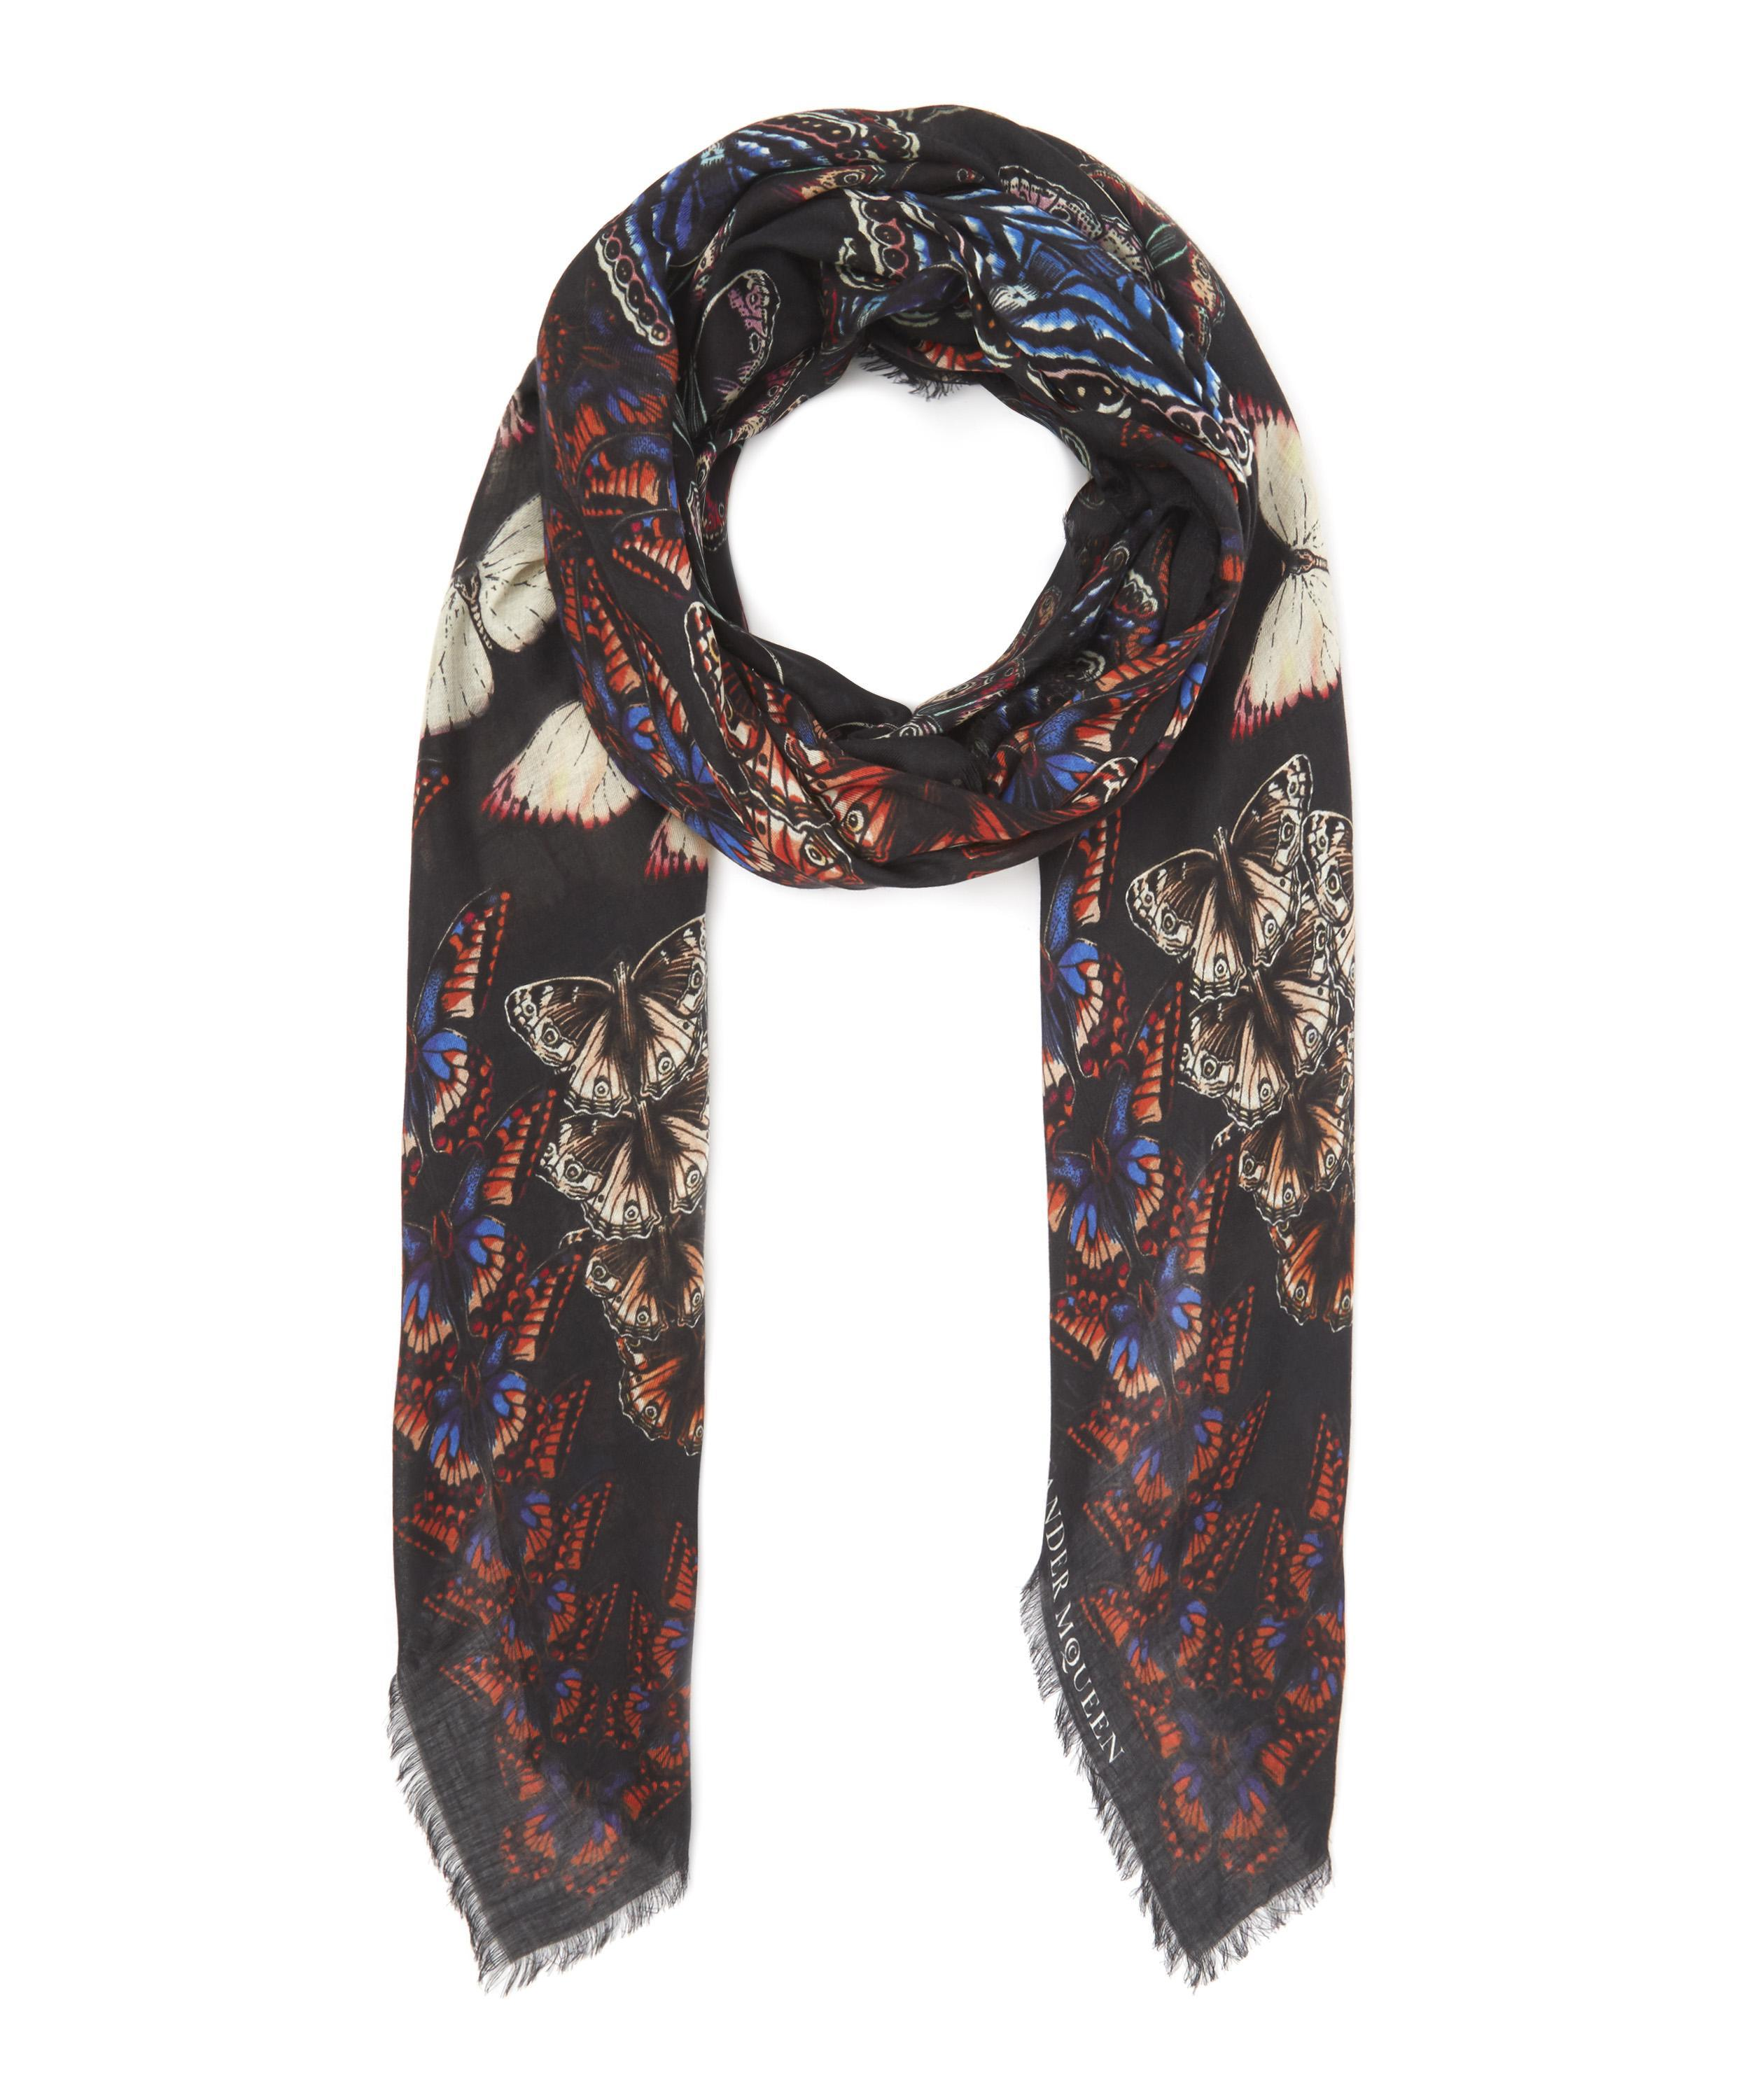 Alexander McQueen Metapmorphosis butterfly pashmina Outlet New Arrival Outlet Store For Sale Cheap High Quality A3kpC2us